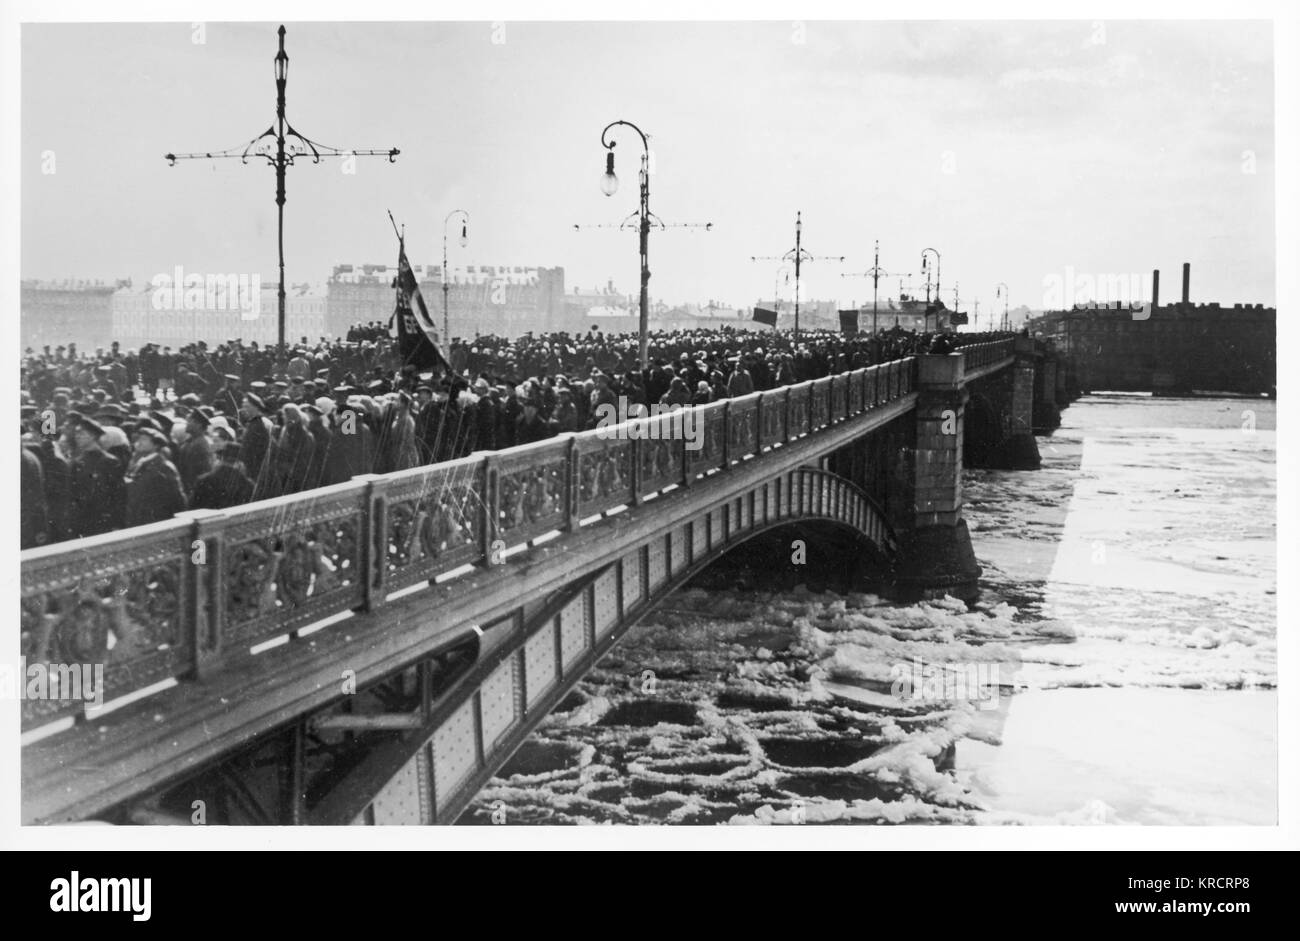 RUSSIAN REVOLUTION - Petrograd : May Day supporters cross Troitsky (Trinity) Bridge to reach the Winter Palace. - Stock Image